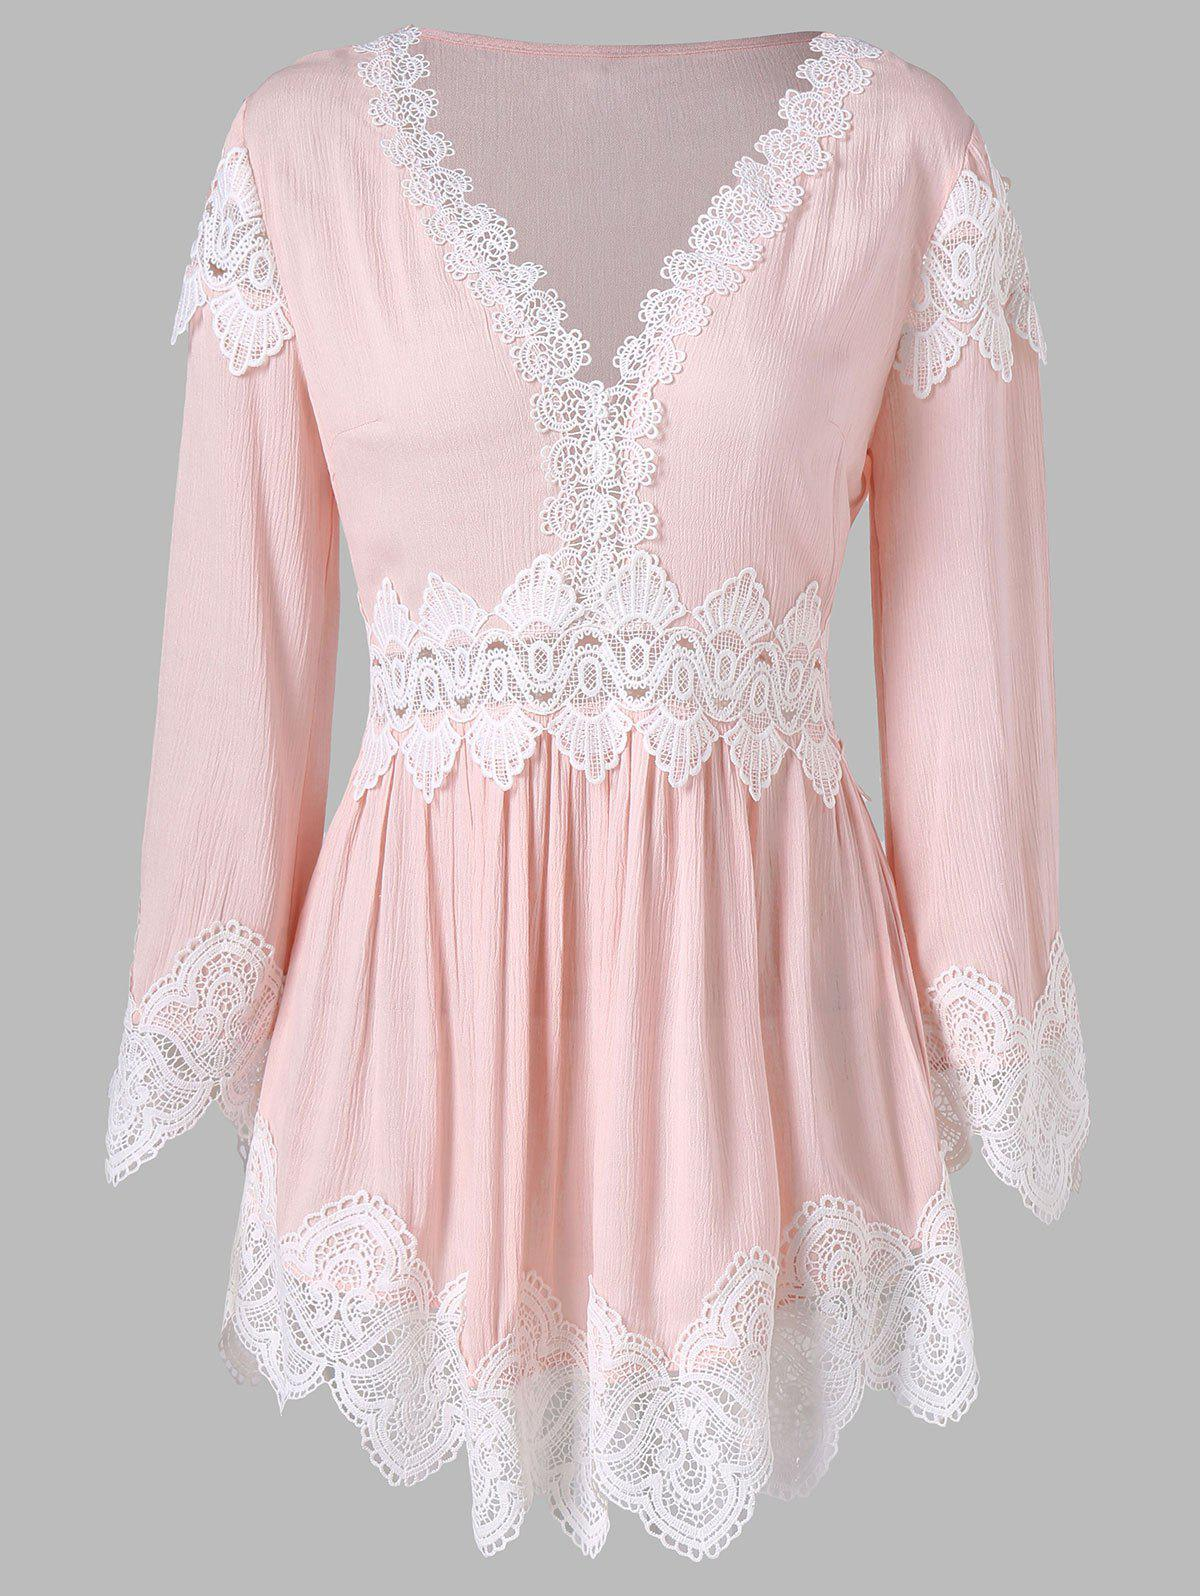 Lace Trim Long Sleeve Tunic Blouse - LIGHT PINK L